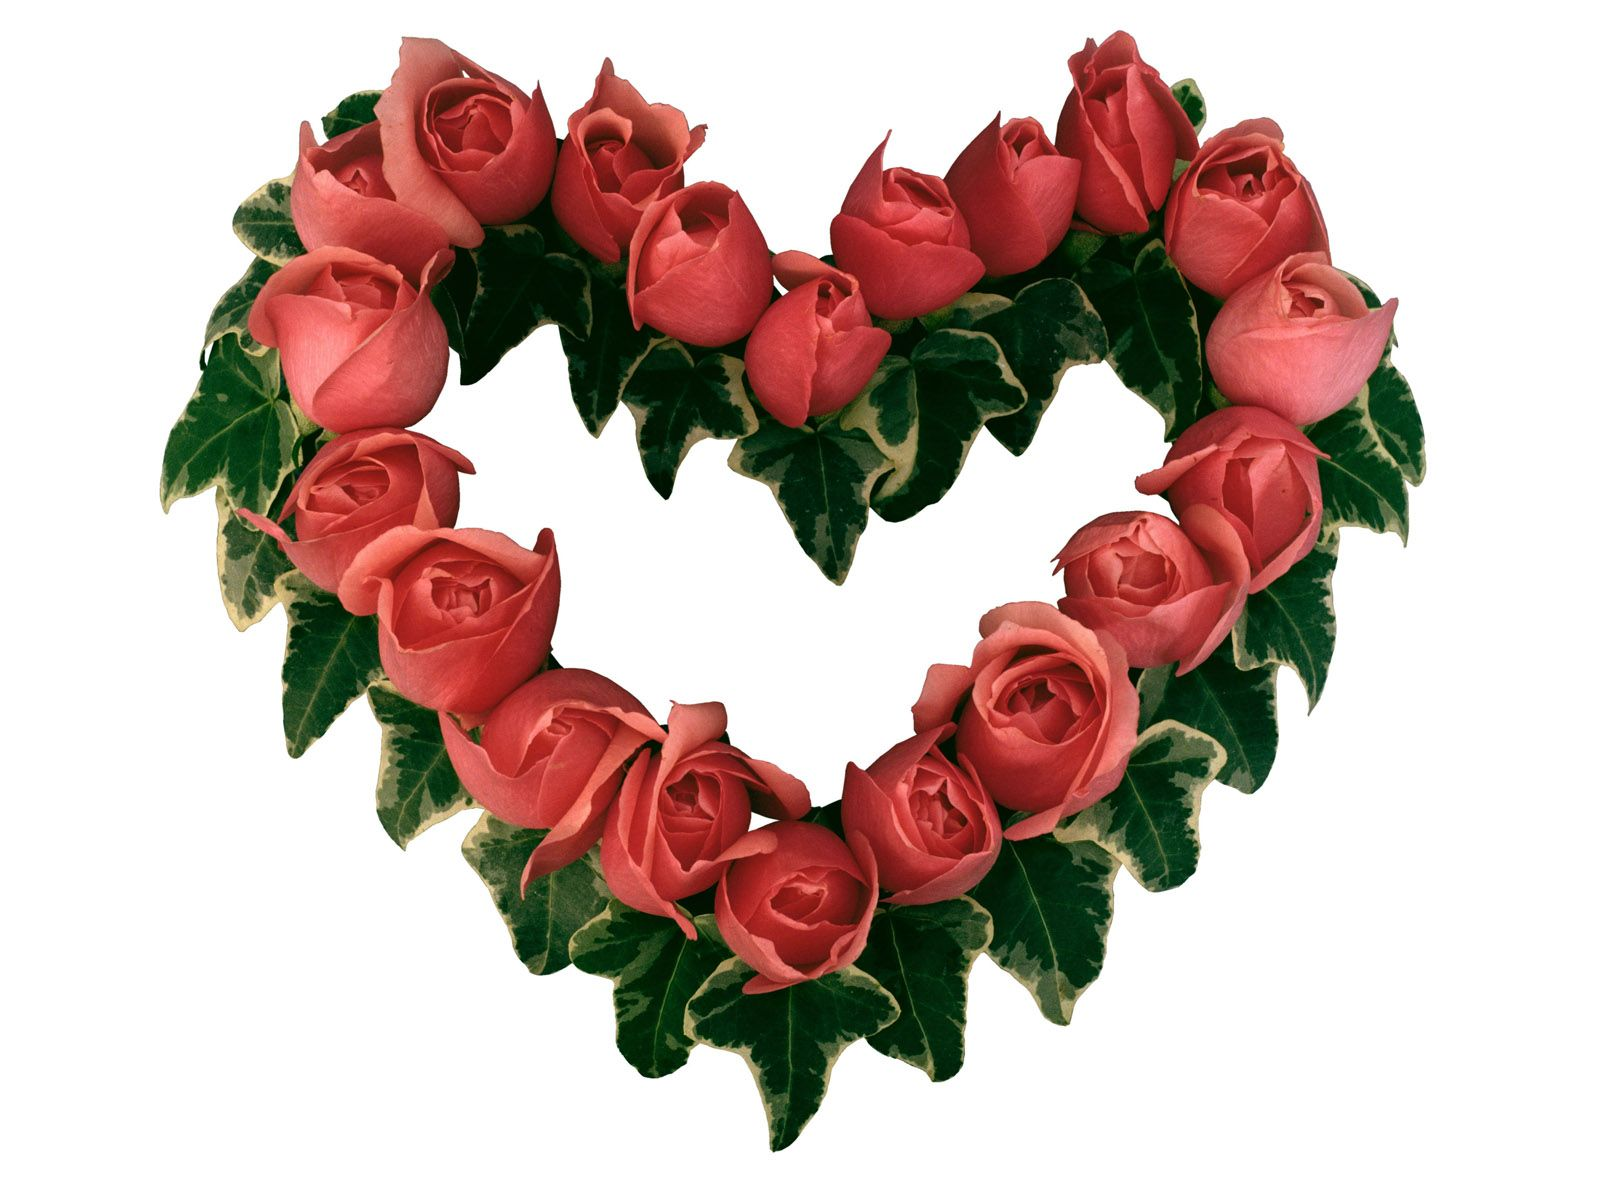 Wallpapers heart flower heart flower 20 top images new images valentine heart dhlflorist Image collections